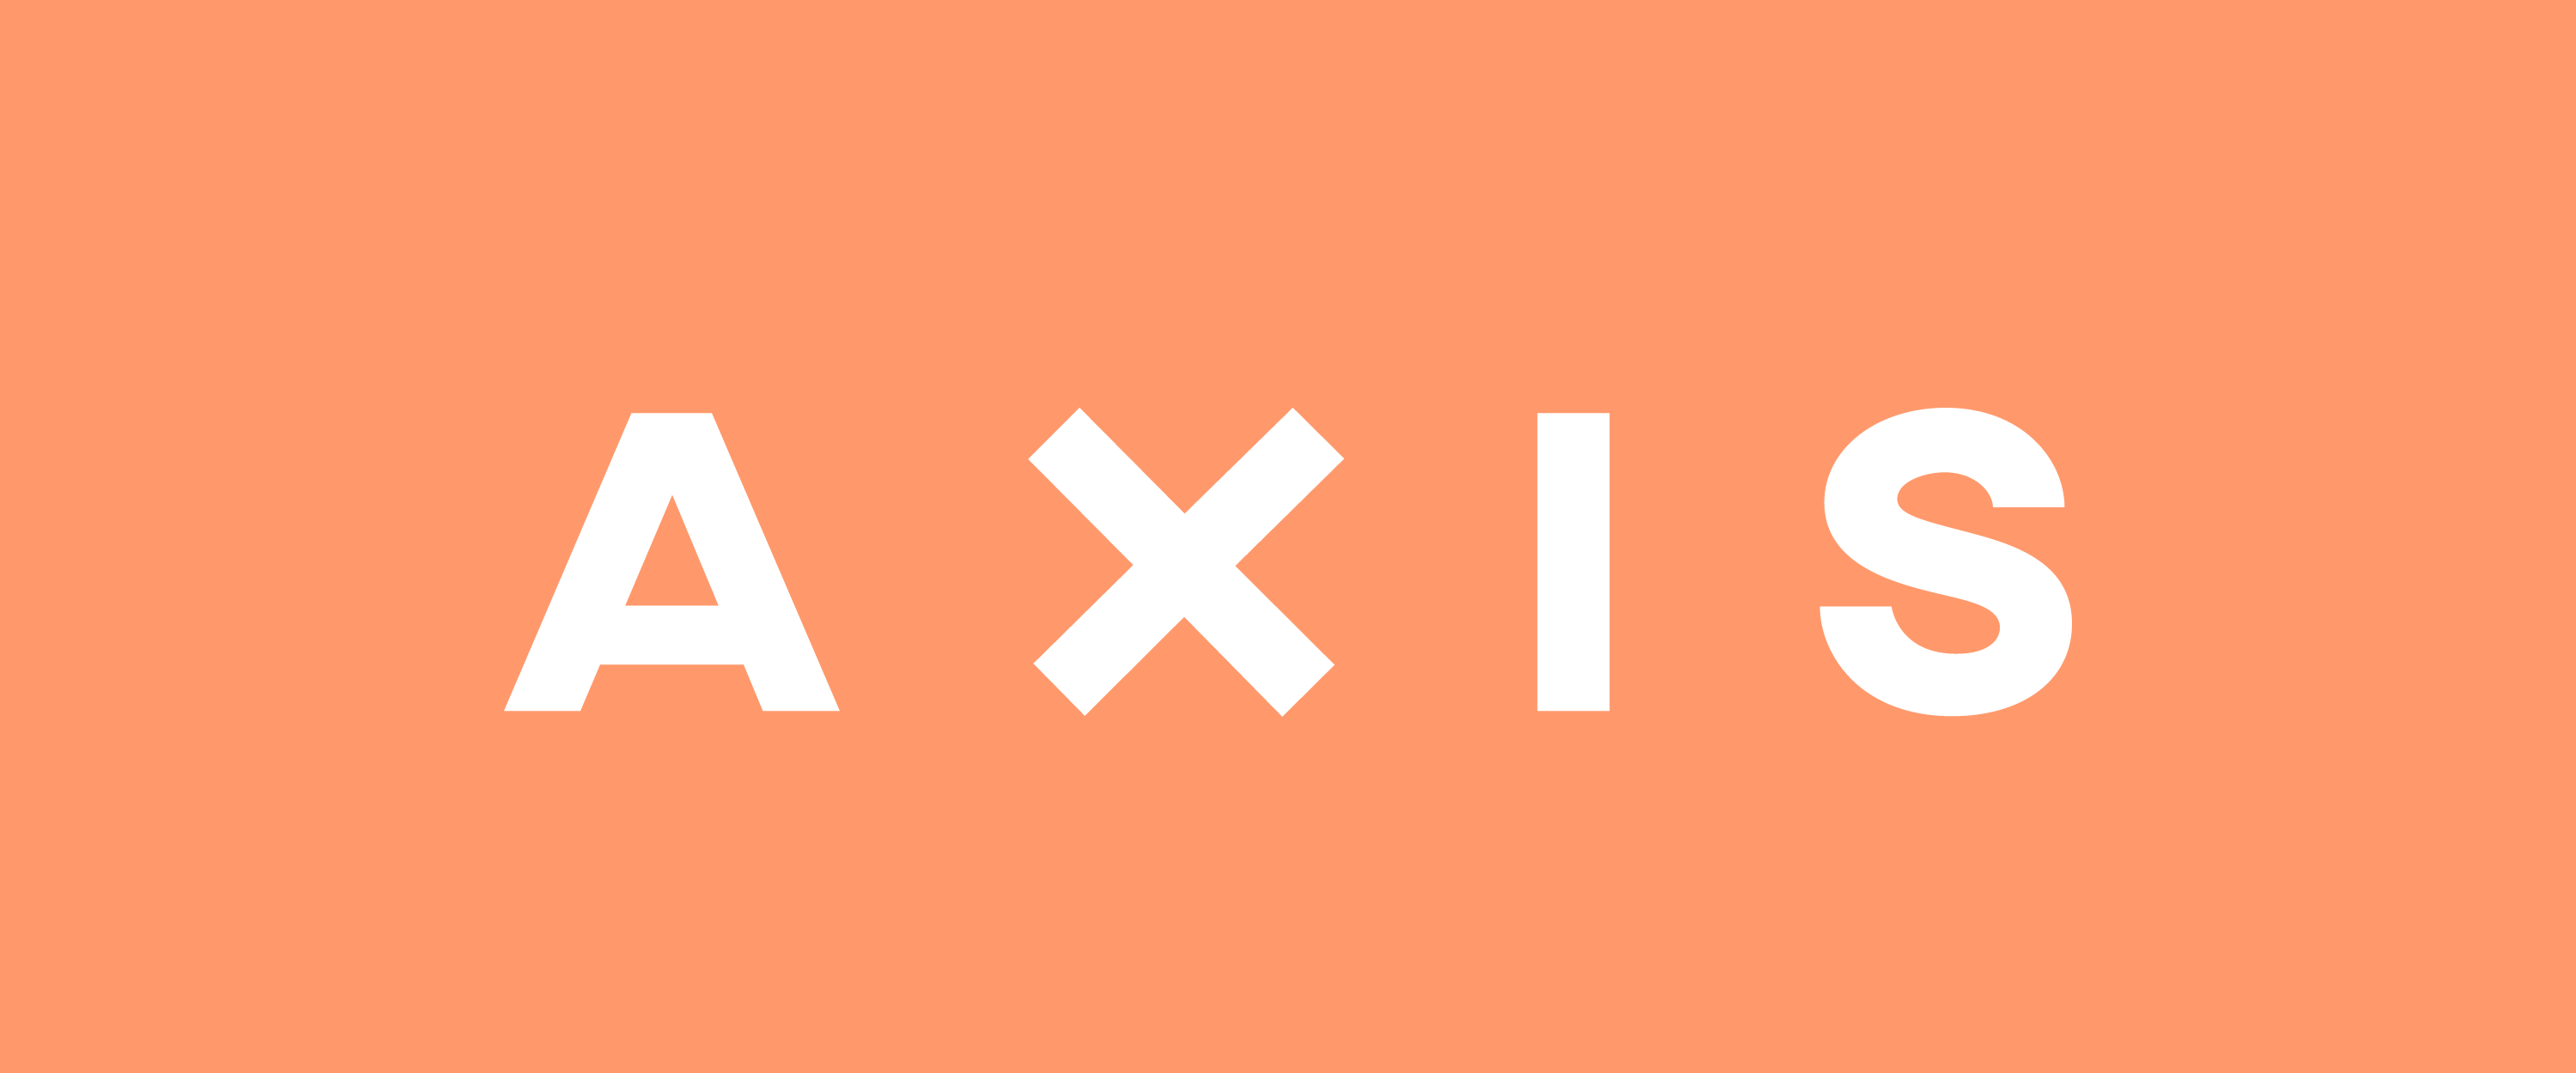 Axis letterype